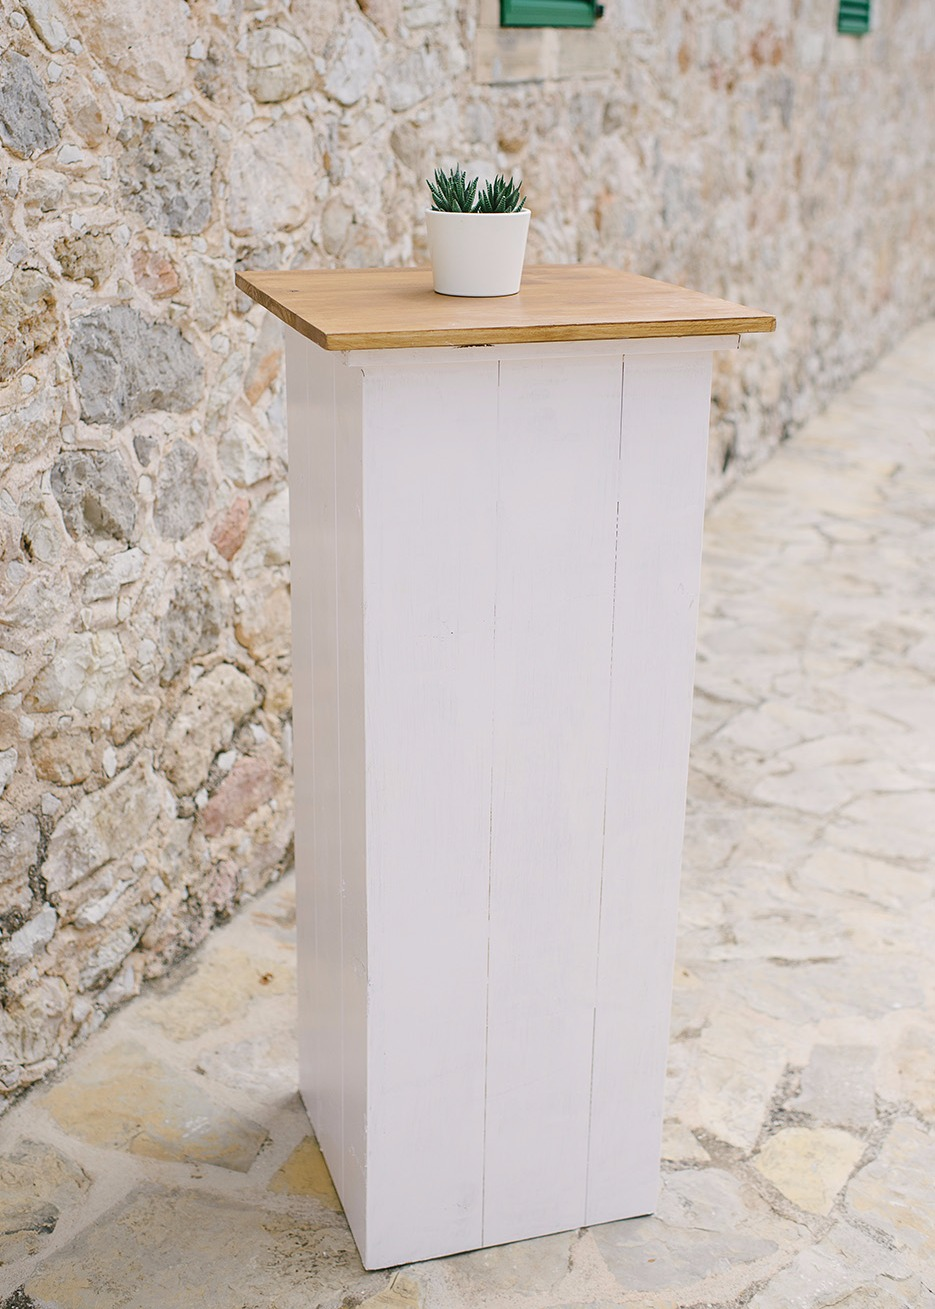 WHITE WOODEN POSEUR TABLE